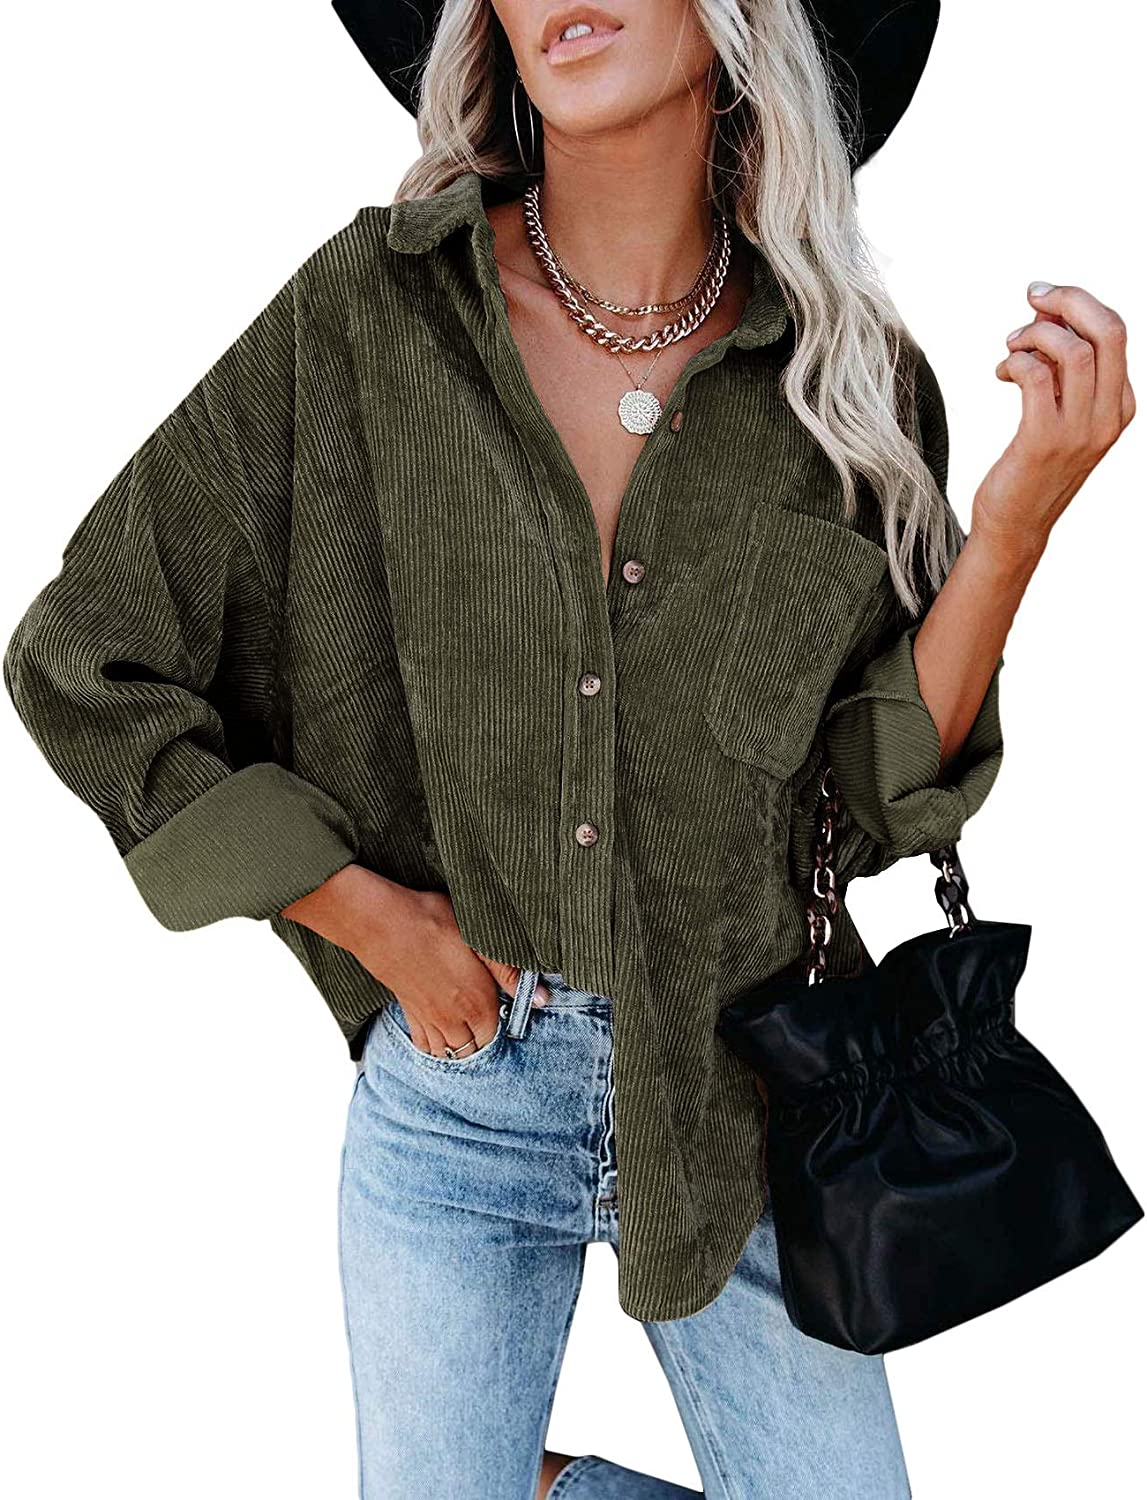 Womens Corduroy Shirt Button Down Long Sleeve Oversized Ribbed Blouse Tops Casual Warm Shirt Jacket